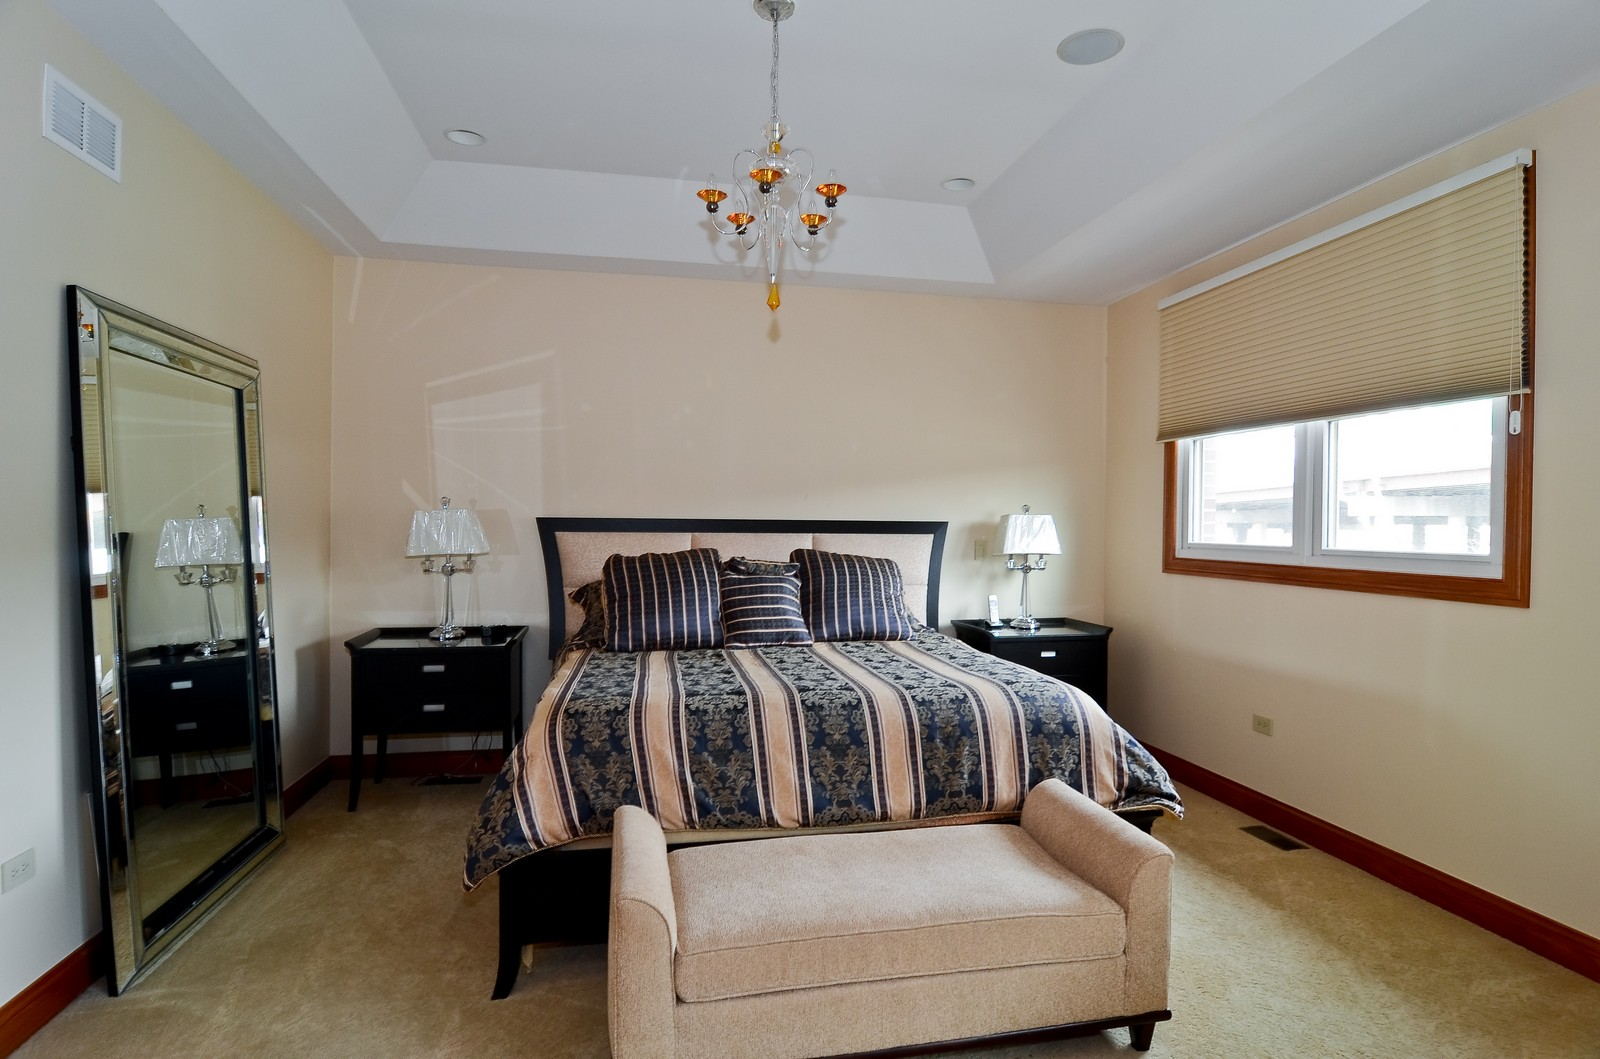 Real Estate Photography - 1443 S. Emerald, Chicago, IL, 60607 - Master Bedroom